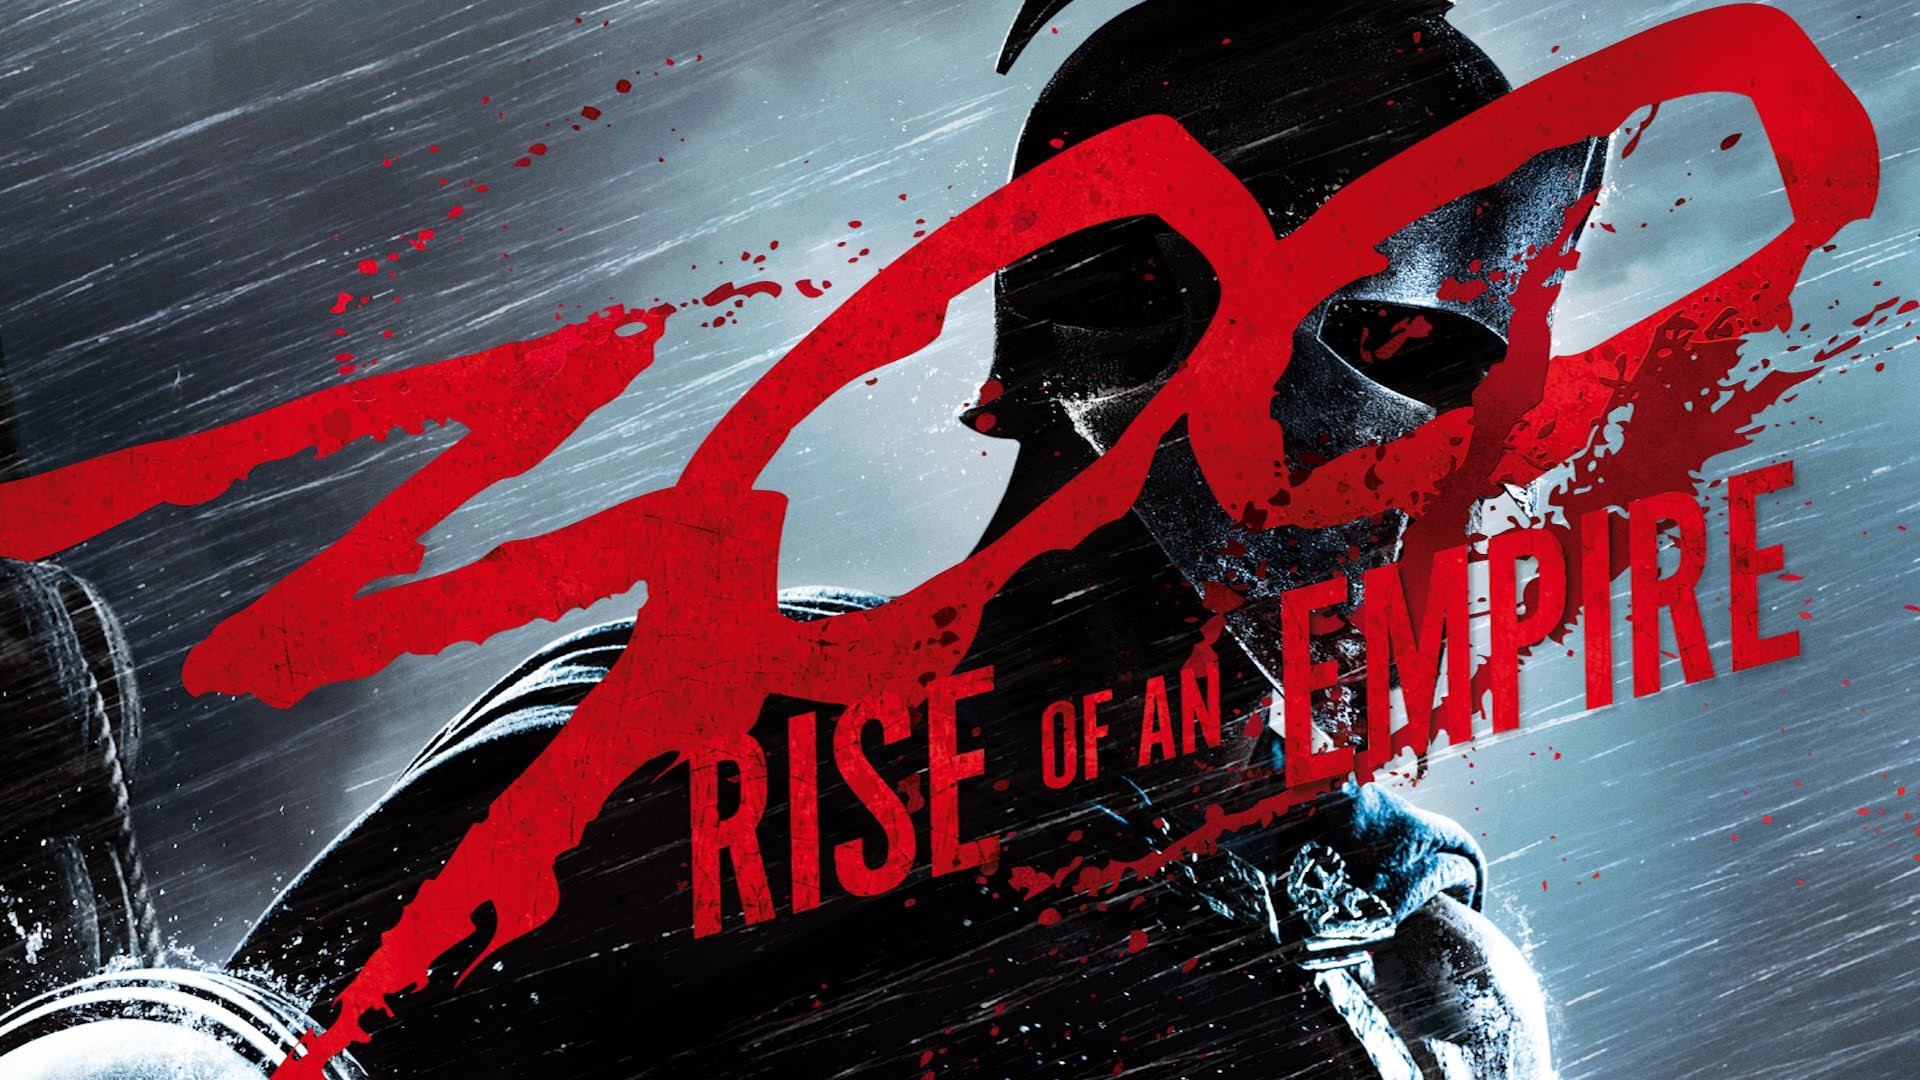 300 Rise Of An Empire Wallpaper 10 Wallpapersbq